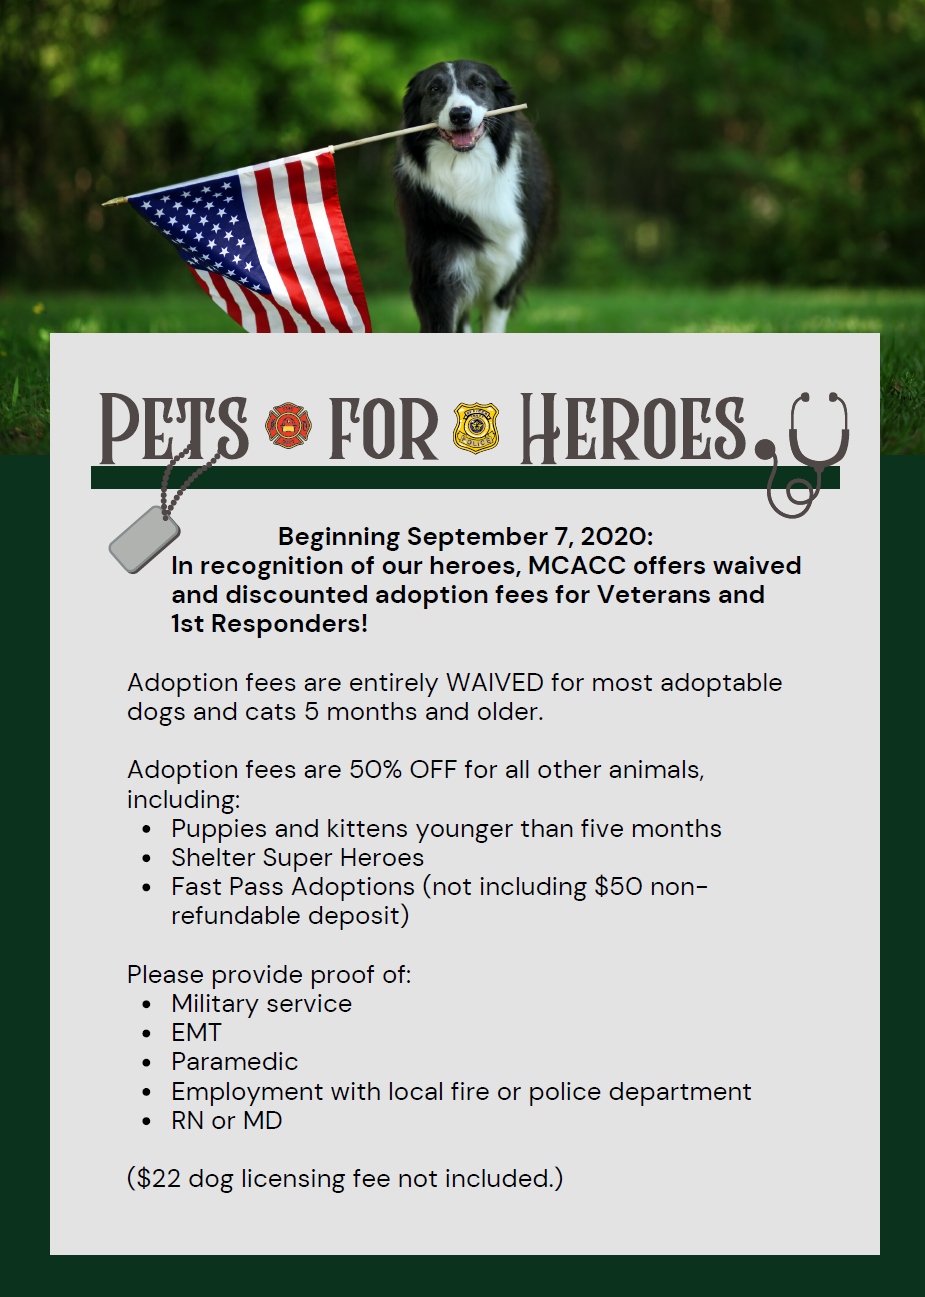 pets for heroes